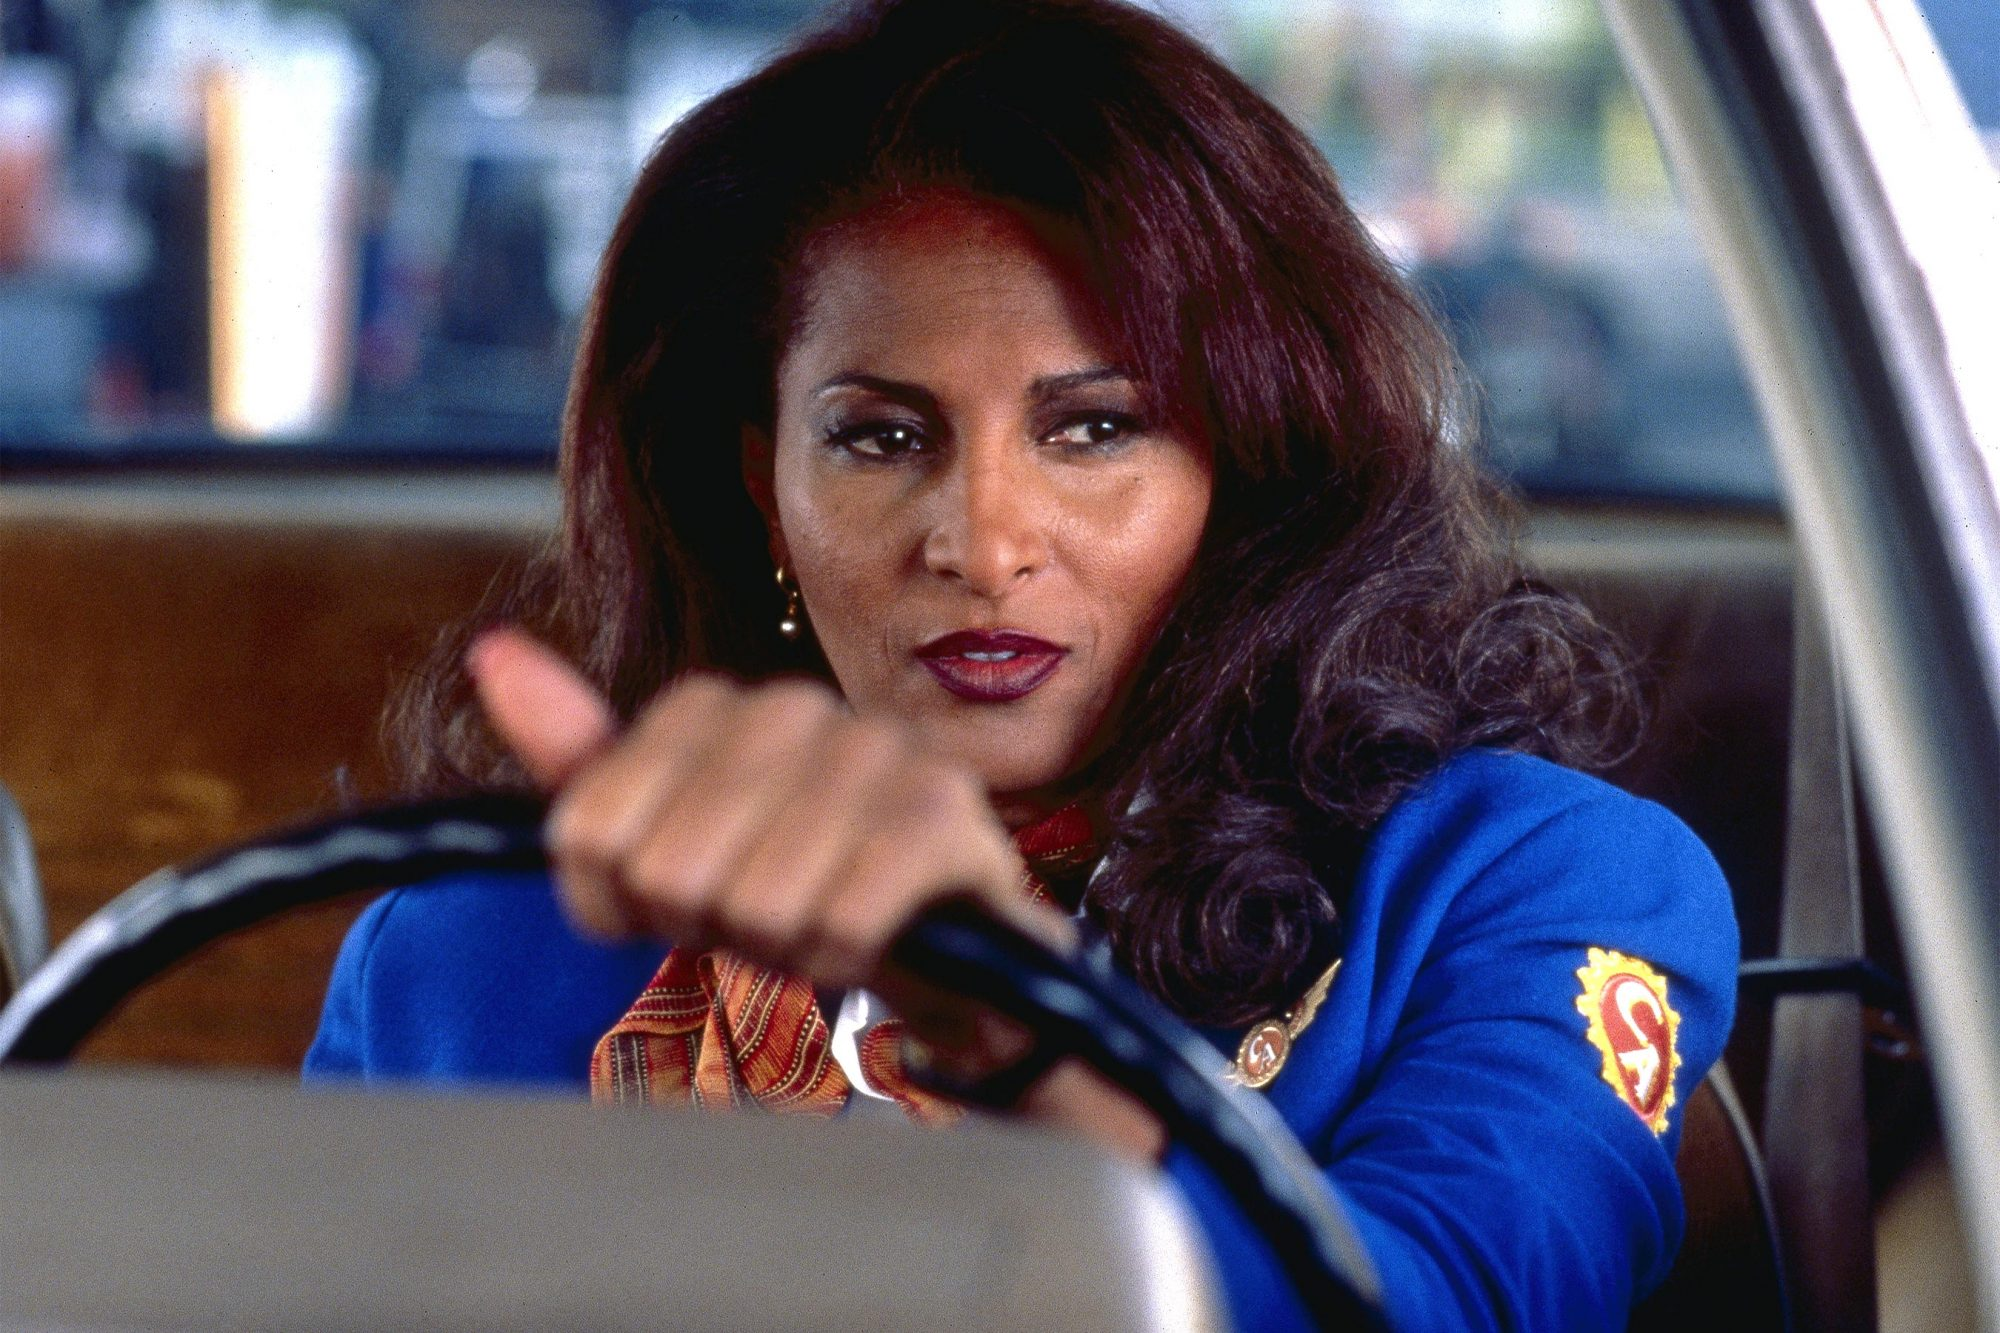 JACKIE BROWN, Pam Grier, 1997. (c) Miramax Films/ Courtesy: Everett Collection.